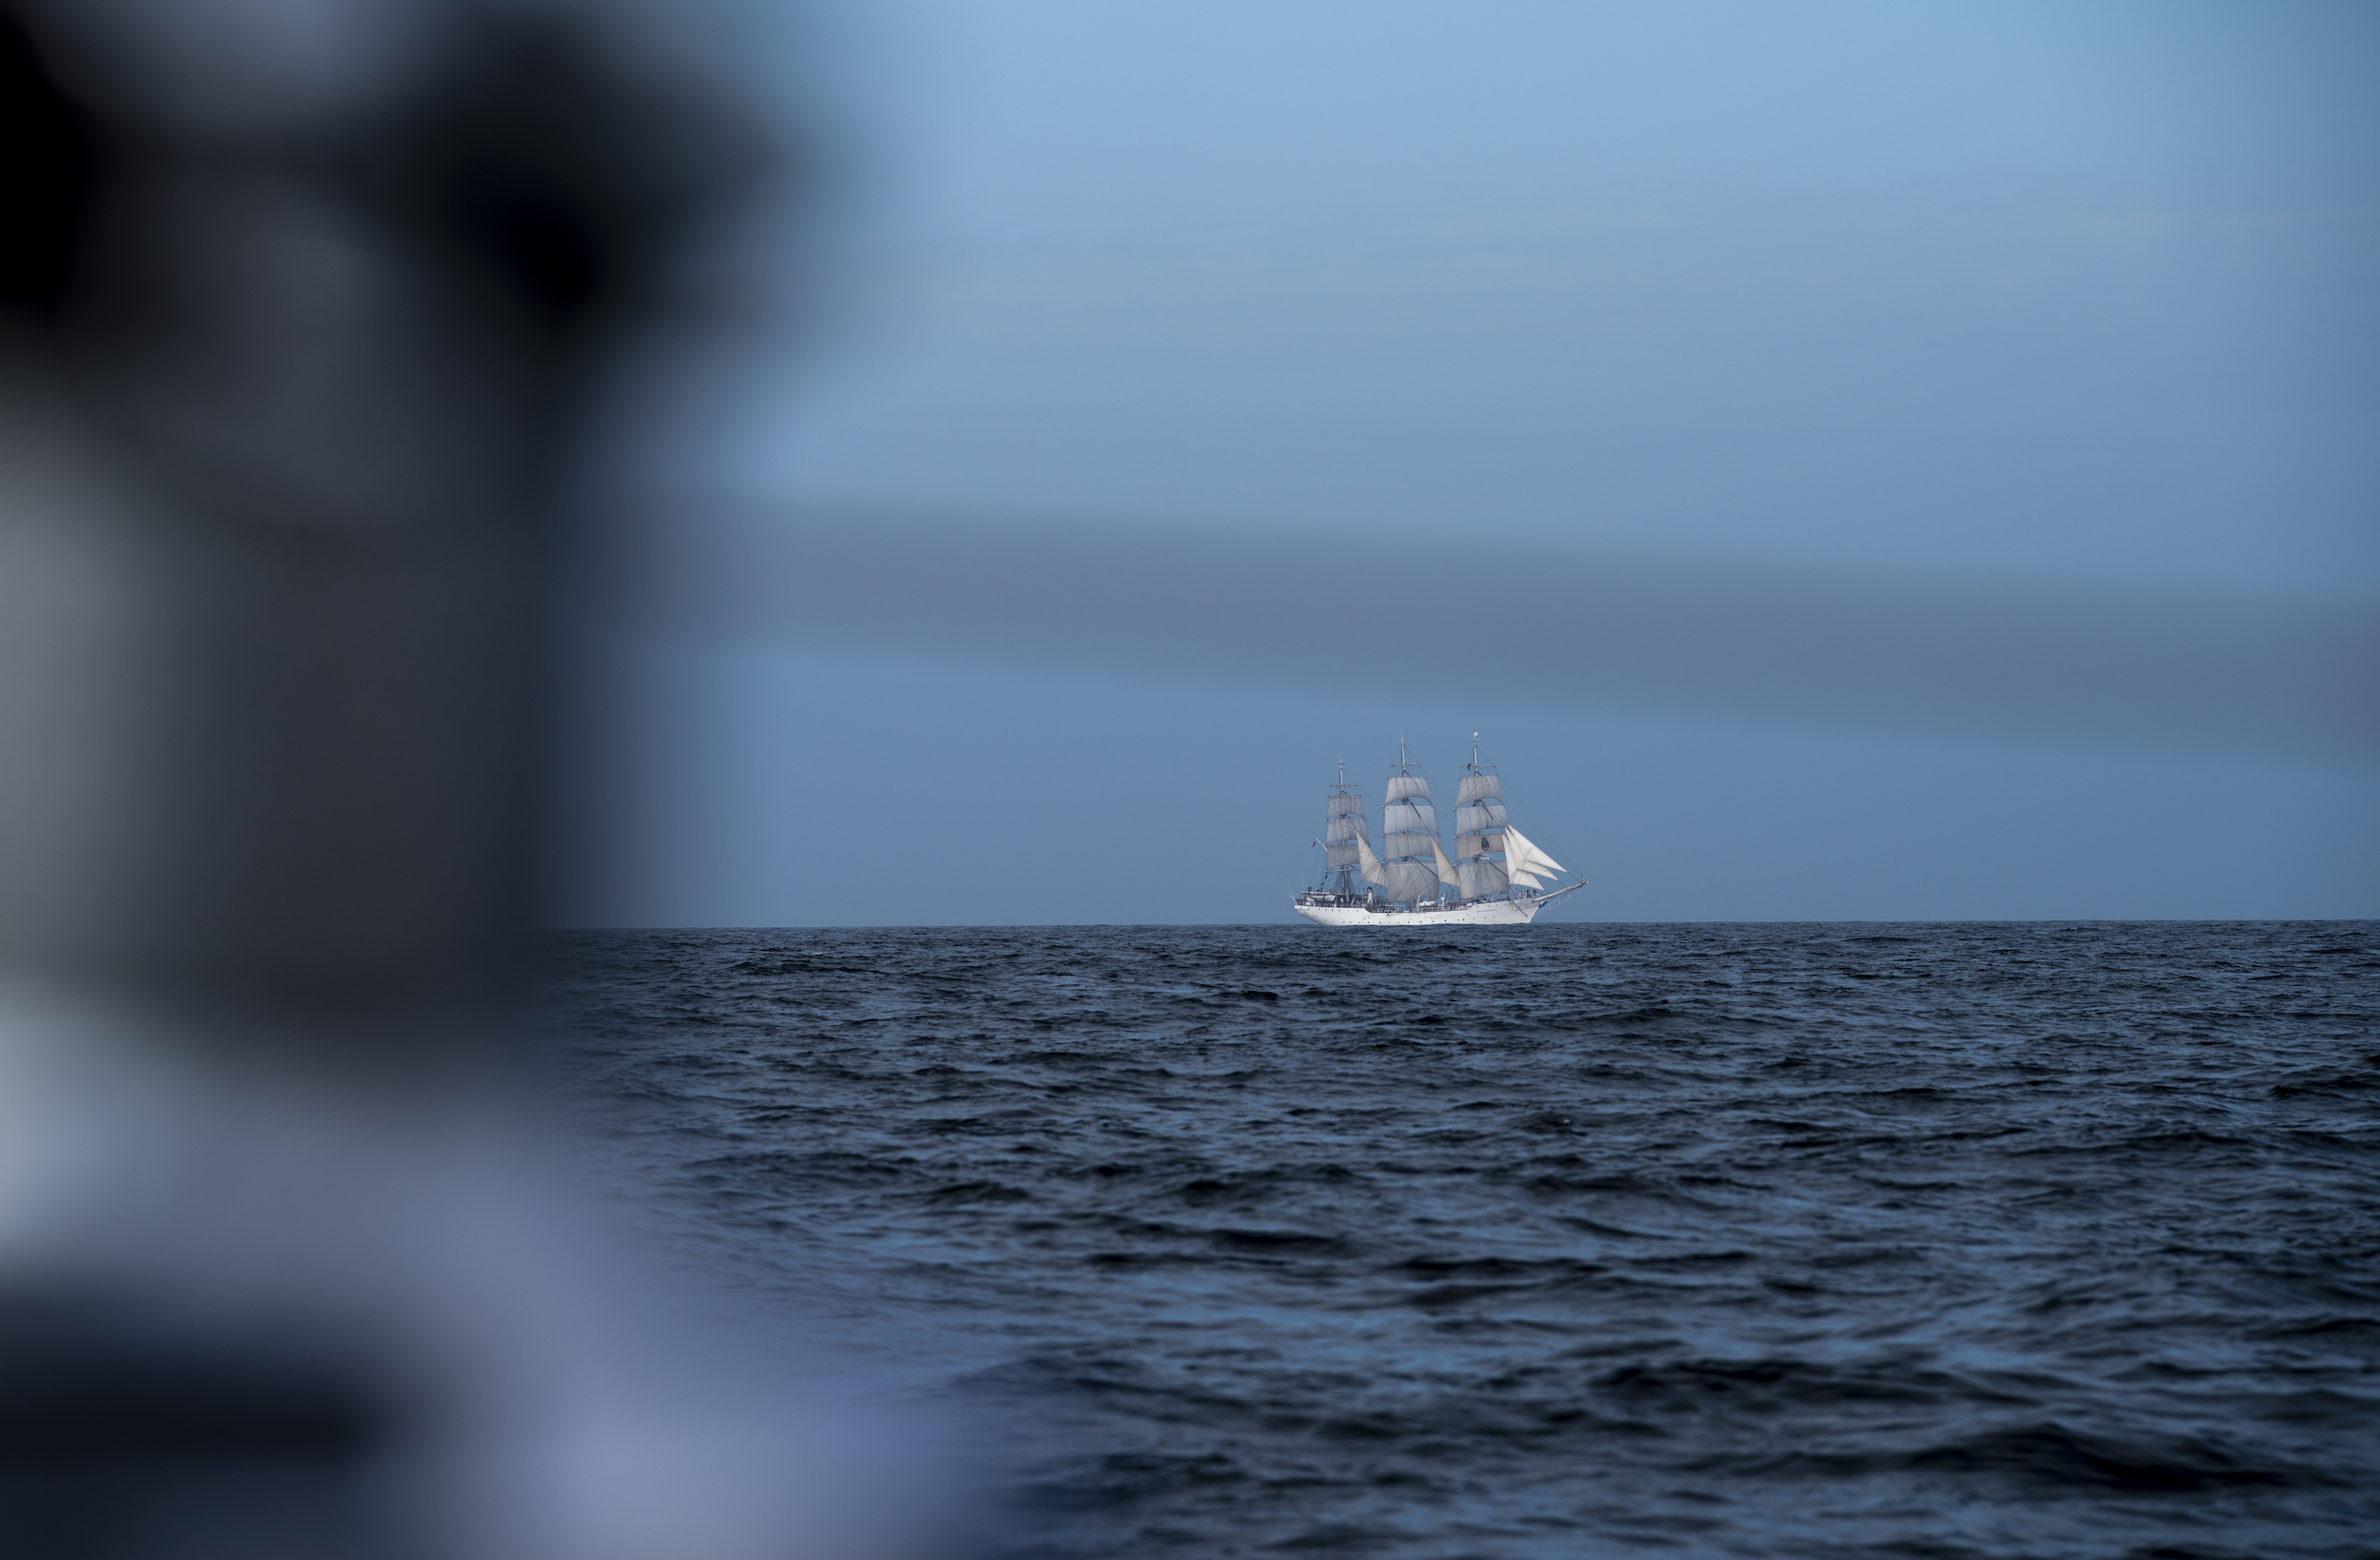 The Norwegian tall ship 'Christian Radich' crossed paths with us south of Norway.